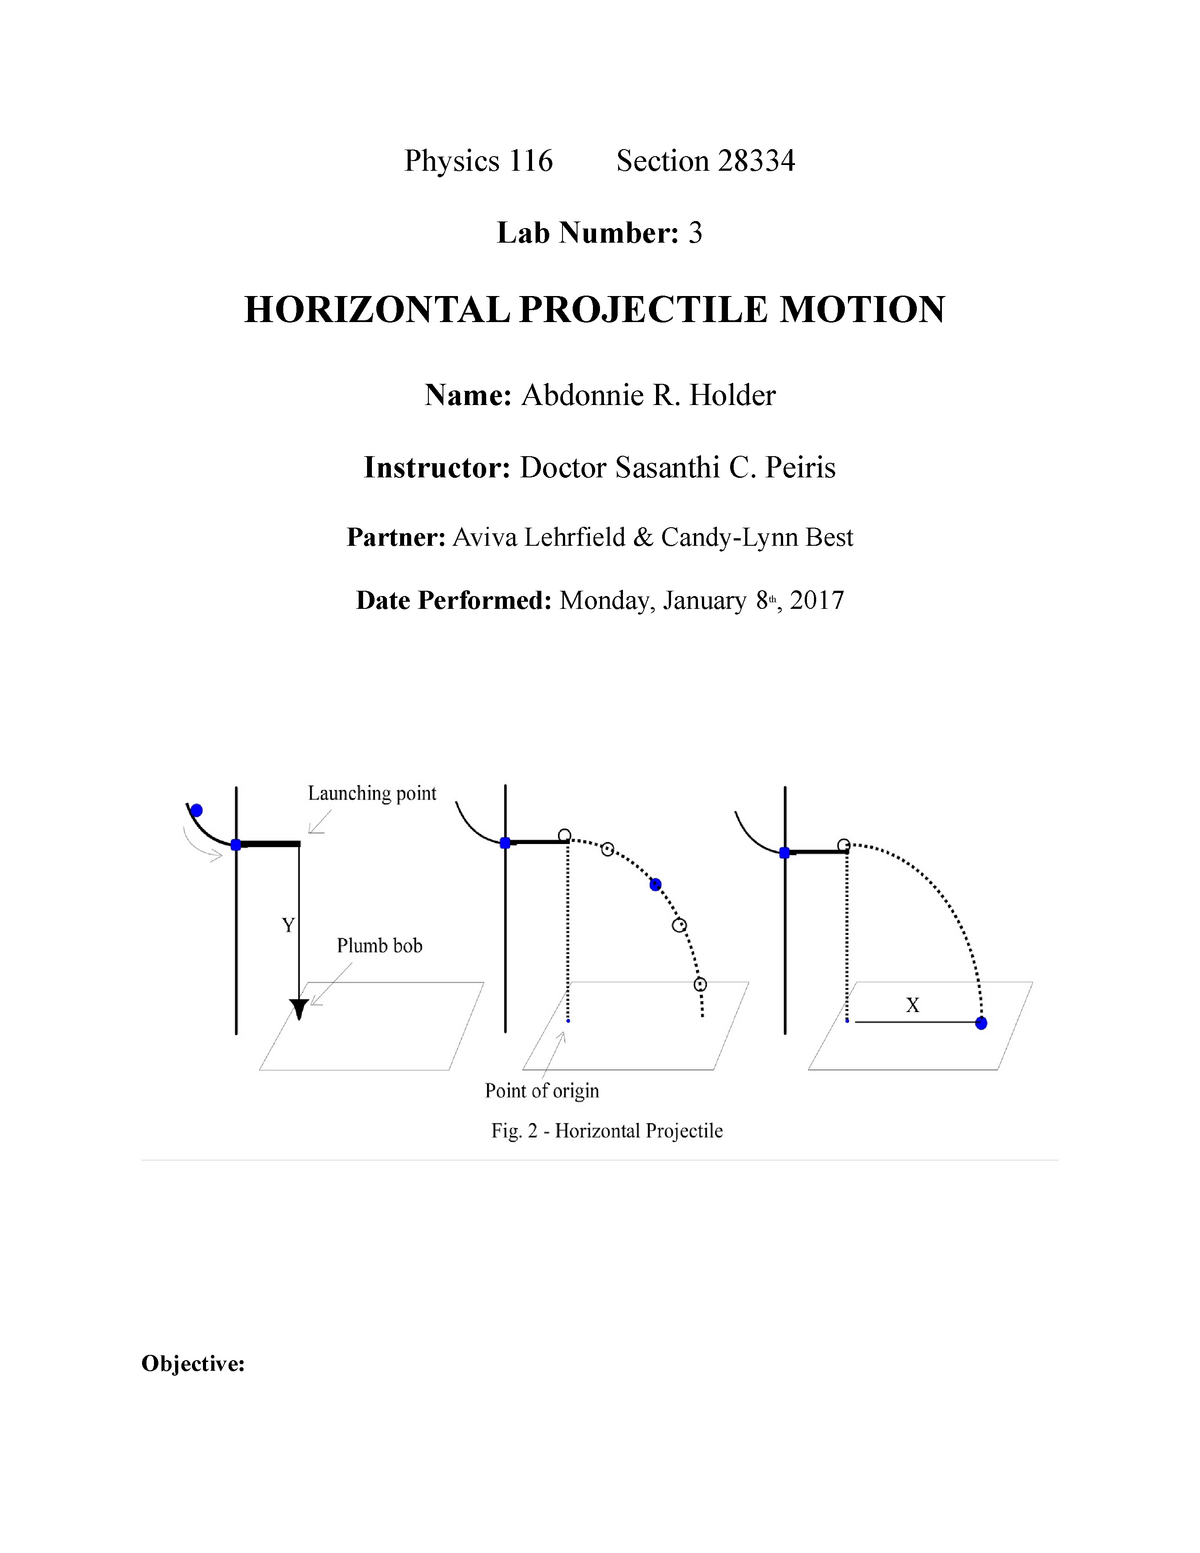 116 horizontal projectile motion - PHY 116 Physics I - CSI